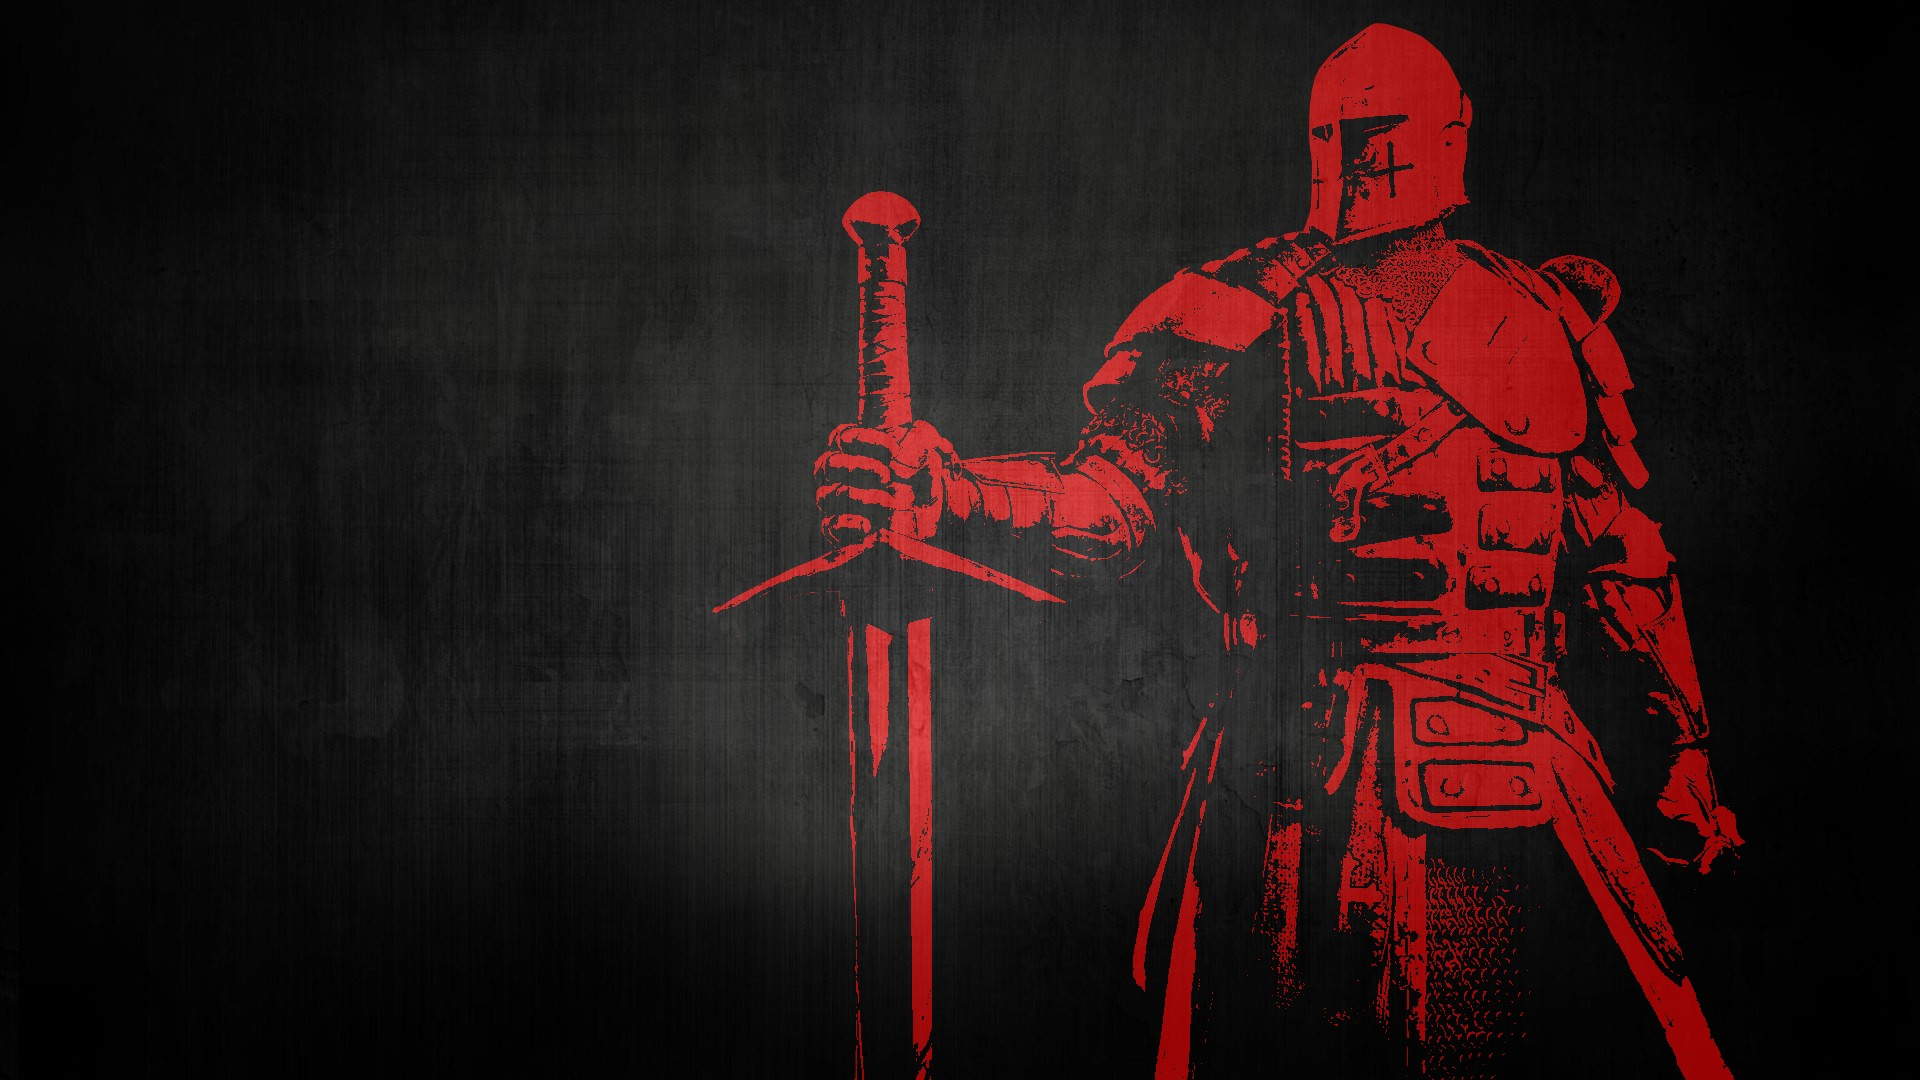 For Honor Wallpaper ·① Download Free Stunning HD